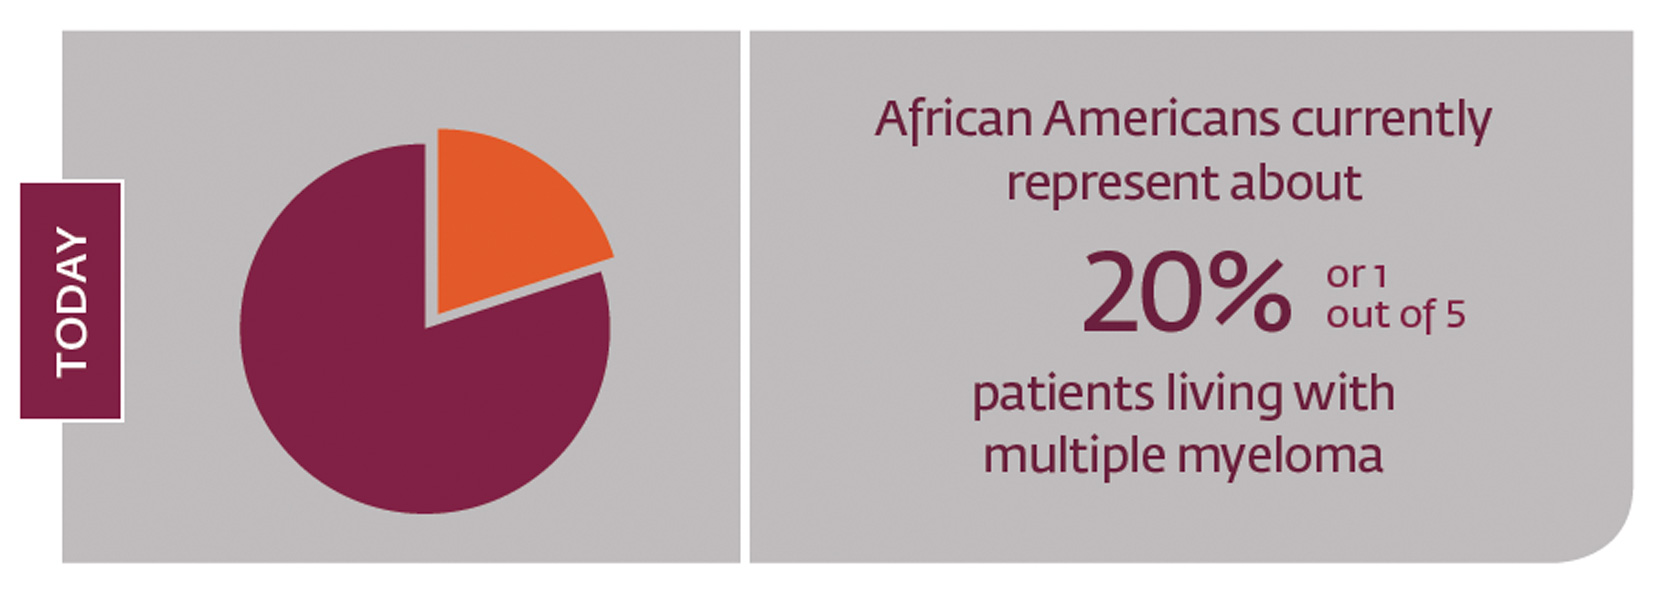 African Americans currently represent about 20%, or one out of 5 patients living with multiple myeloma.